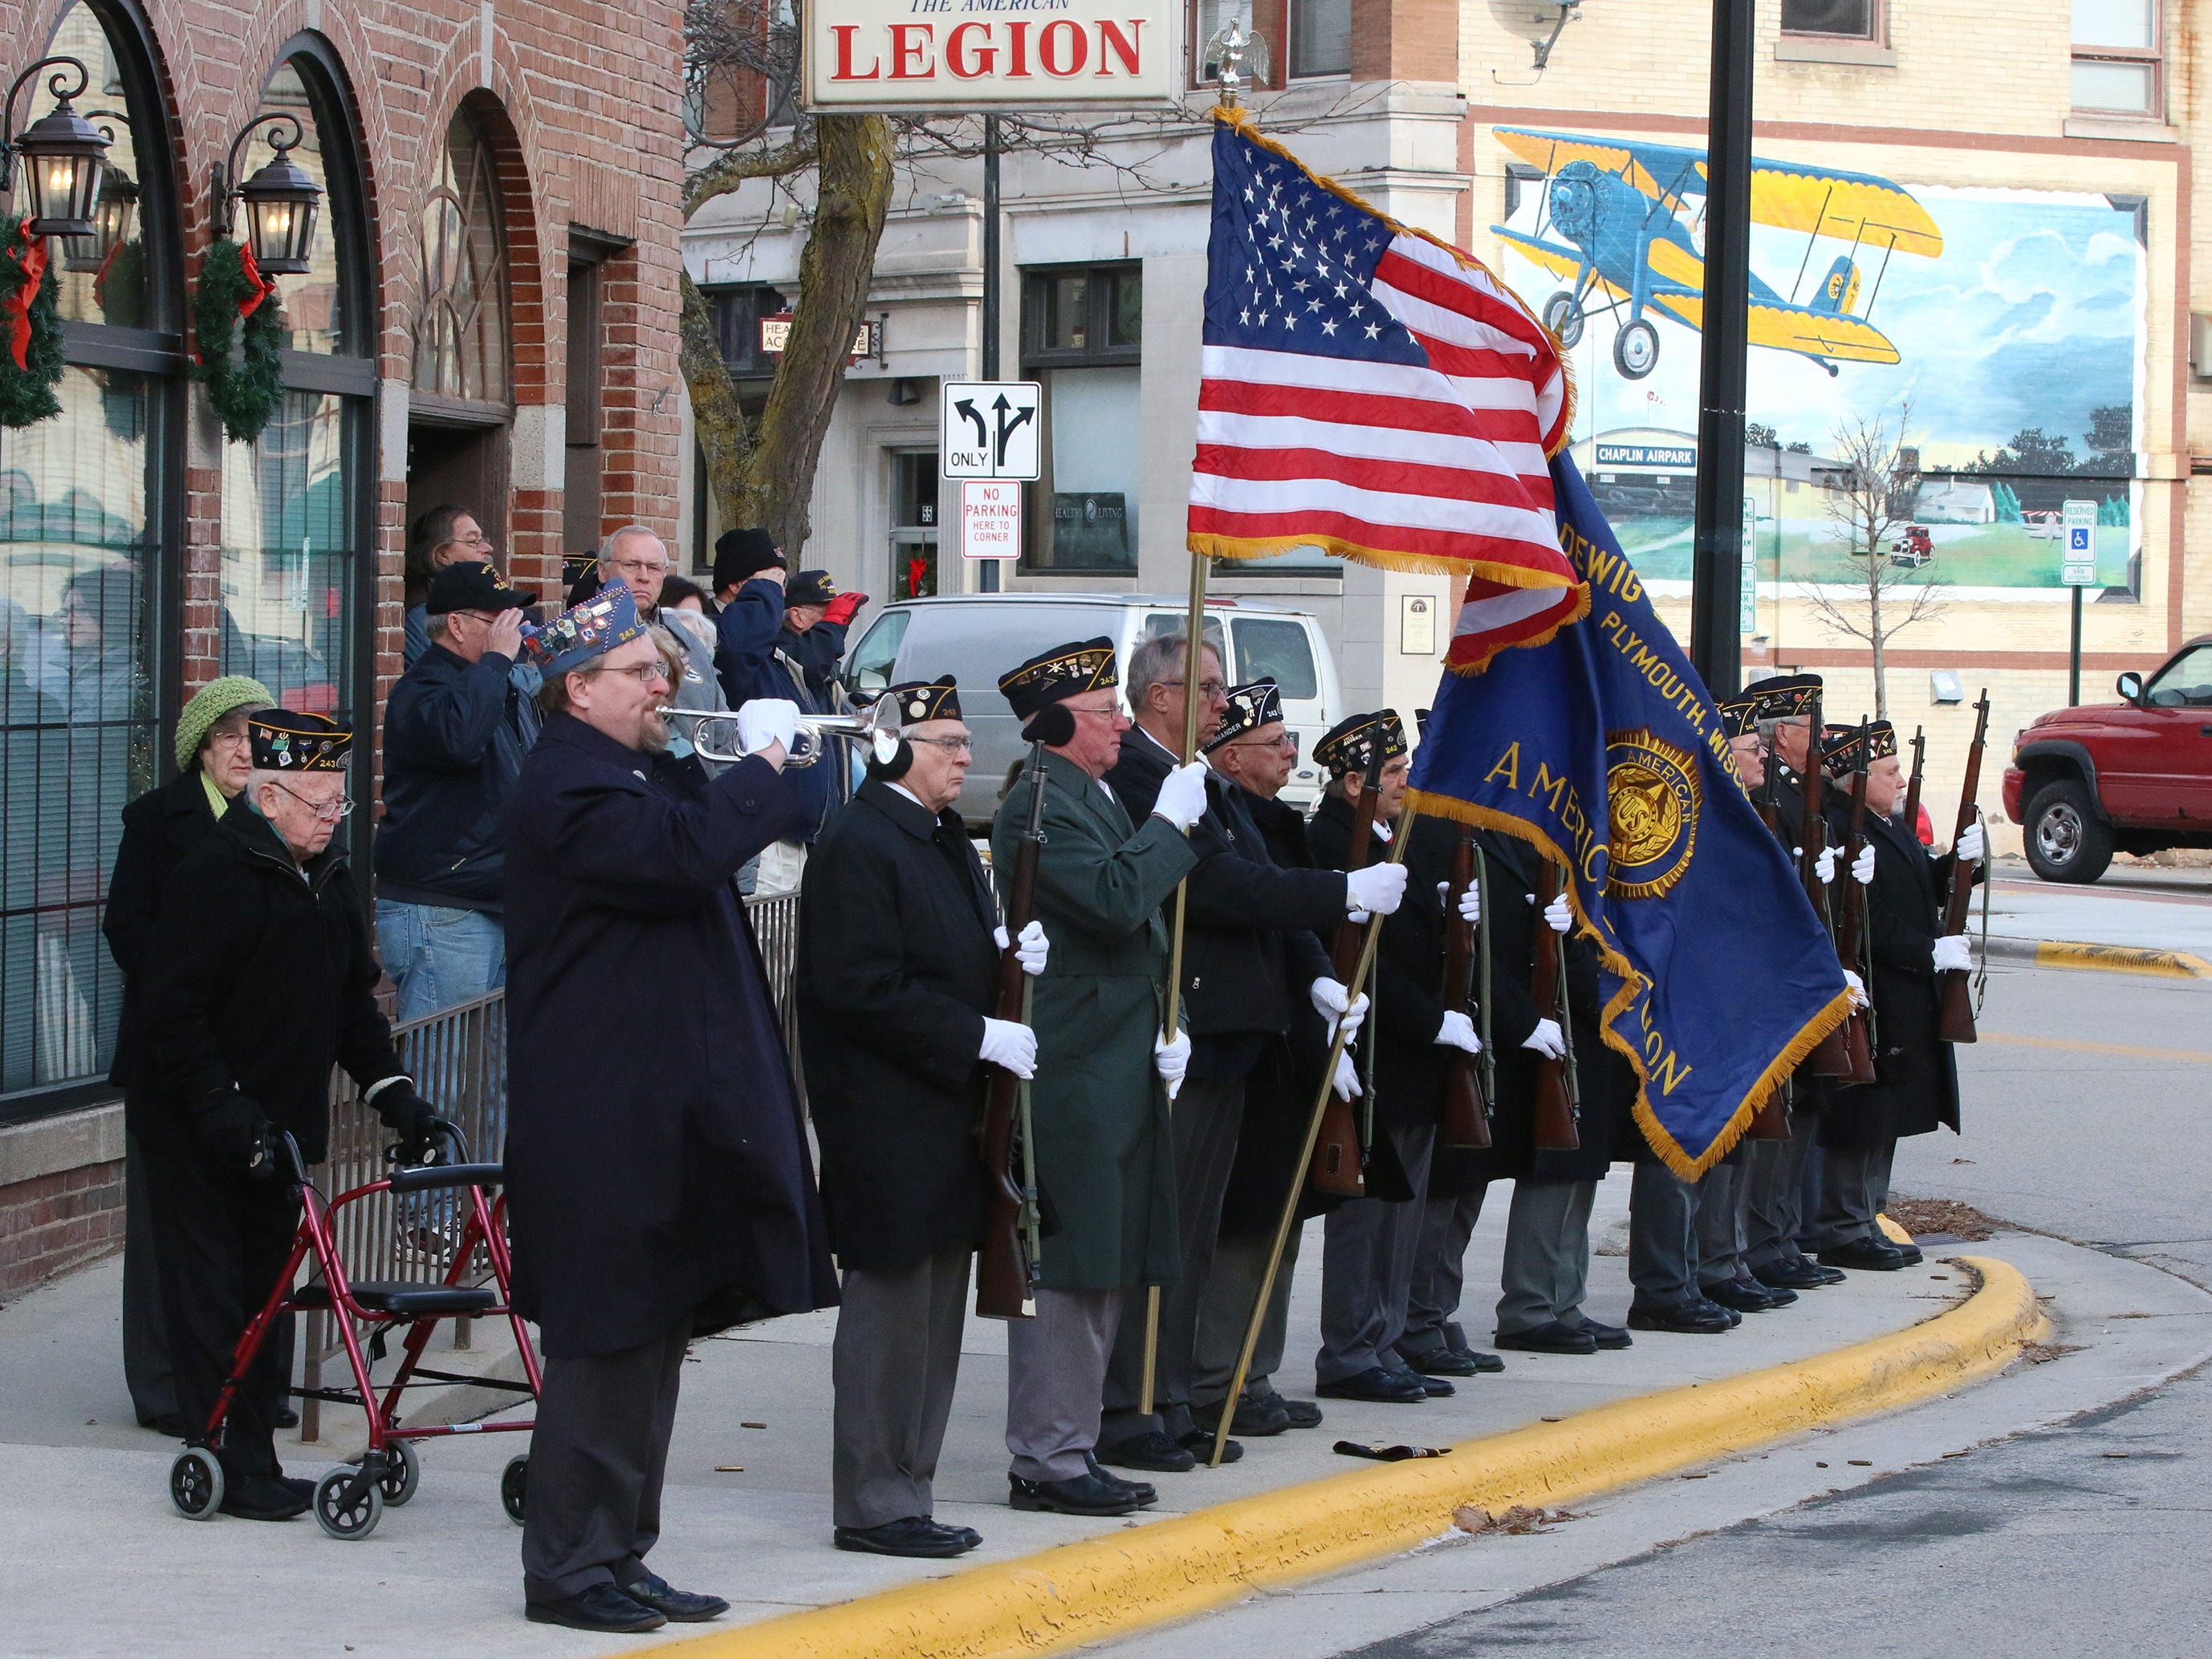 Members of American Legion Ladwig-Zinkgraf, Post 243, stand in formation during a ceremony honoring the soldiers who died at Pearl Harbor in 1941, while taps are performed by the Post's Michael Kalsbeek, Friday, December 7, 2018, in Plymouth, Wis.